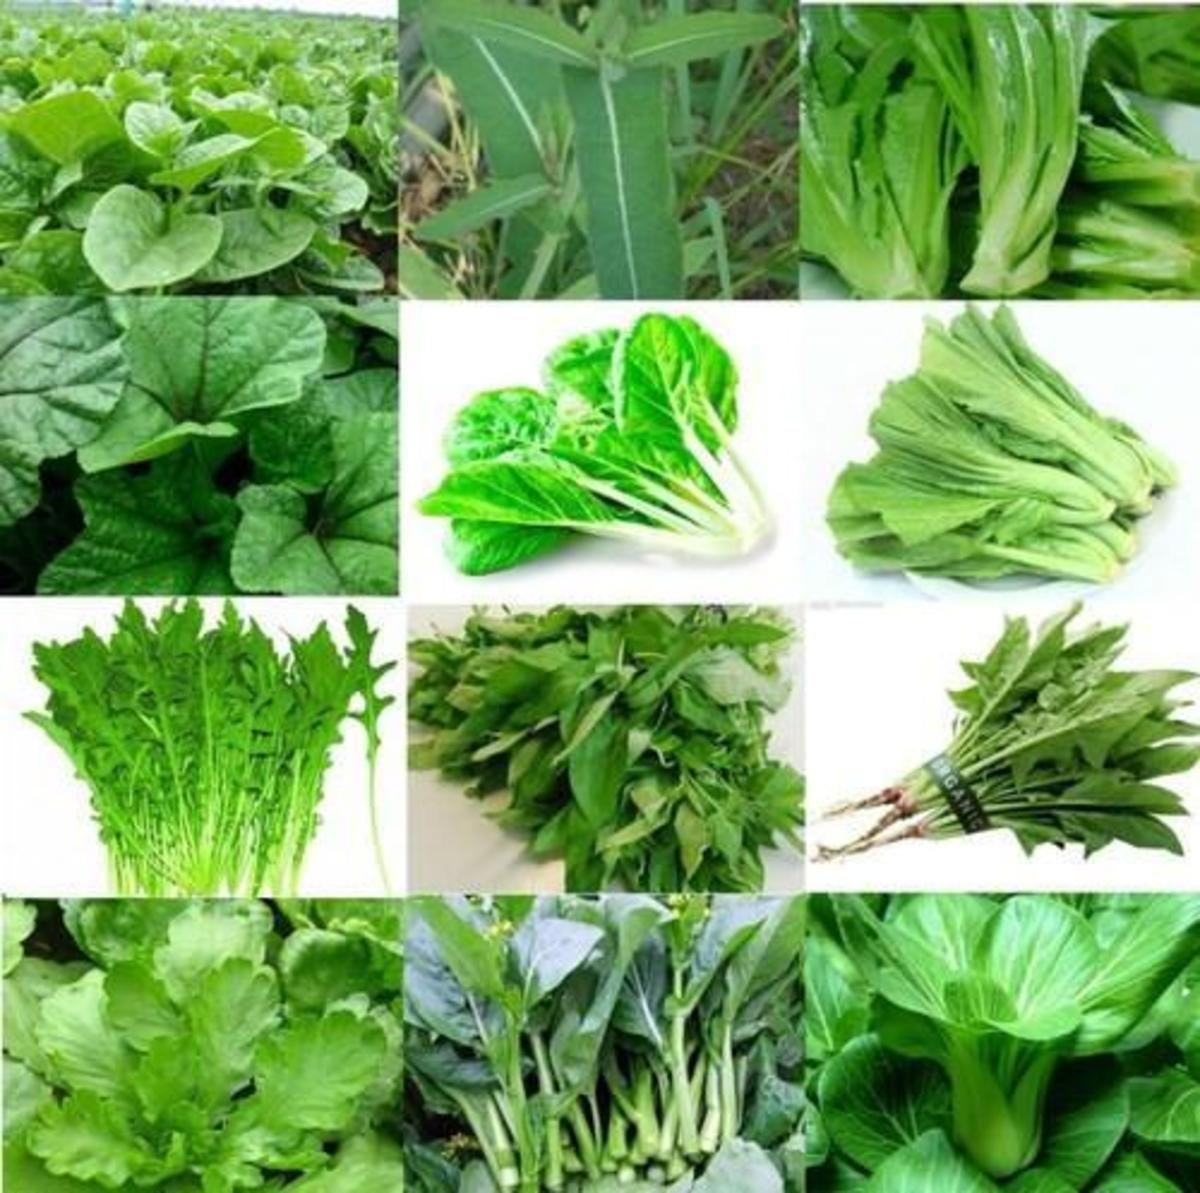 Health Benefits of Eating Green Leafy Vegetables